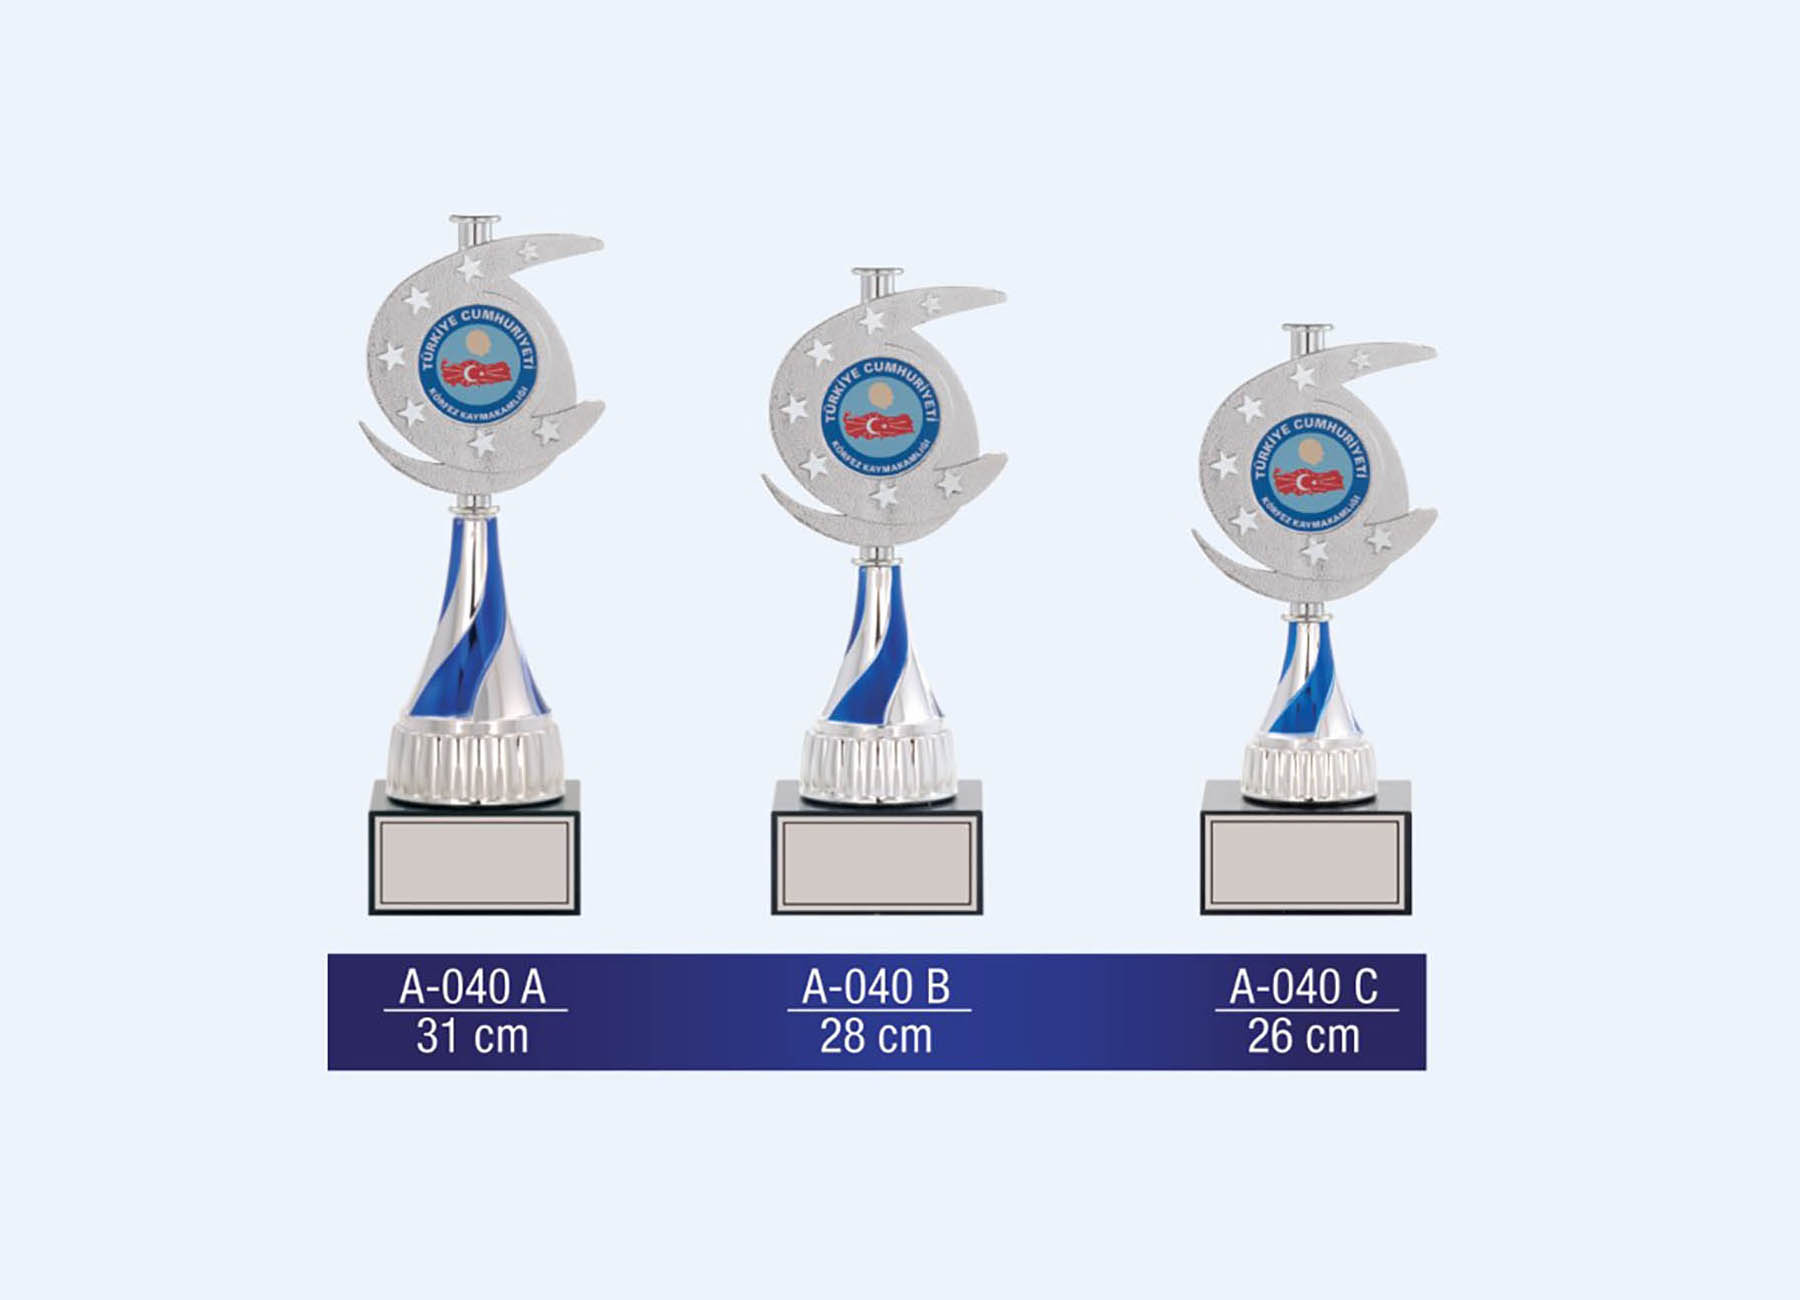 A-040 General Cups